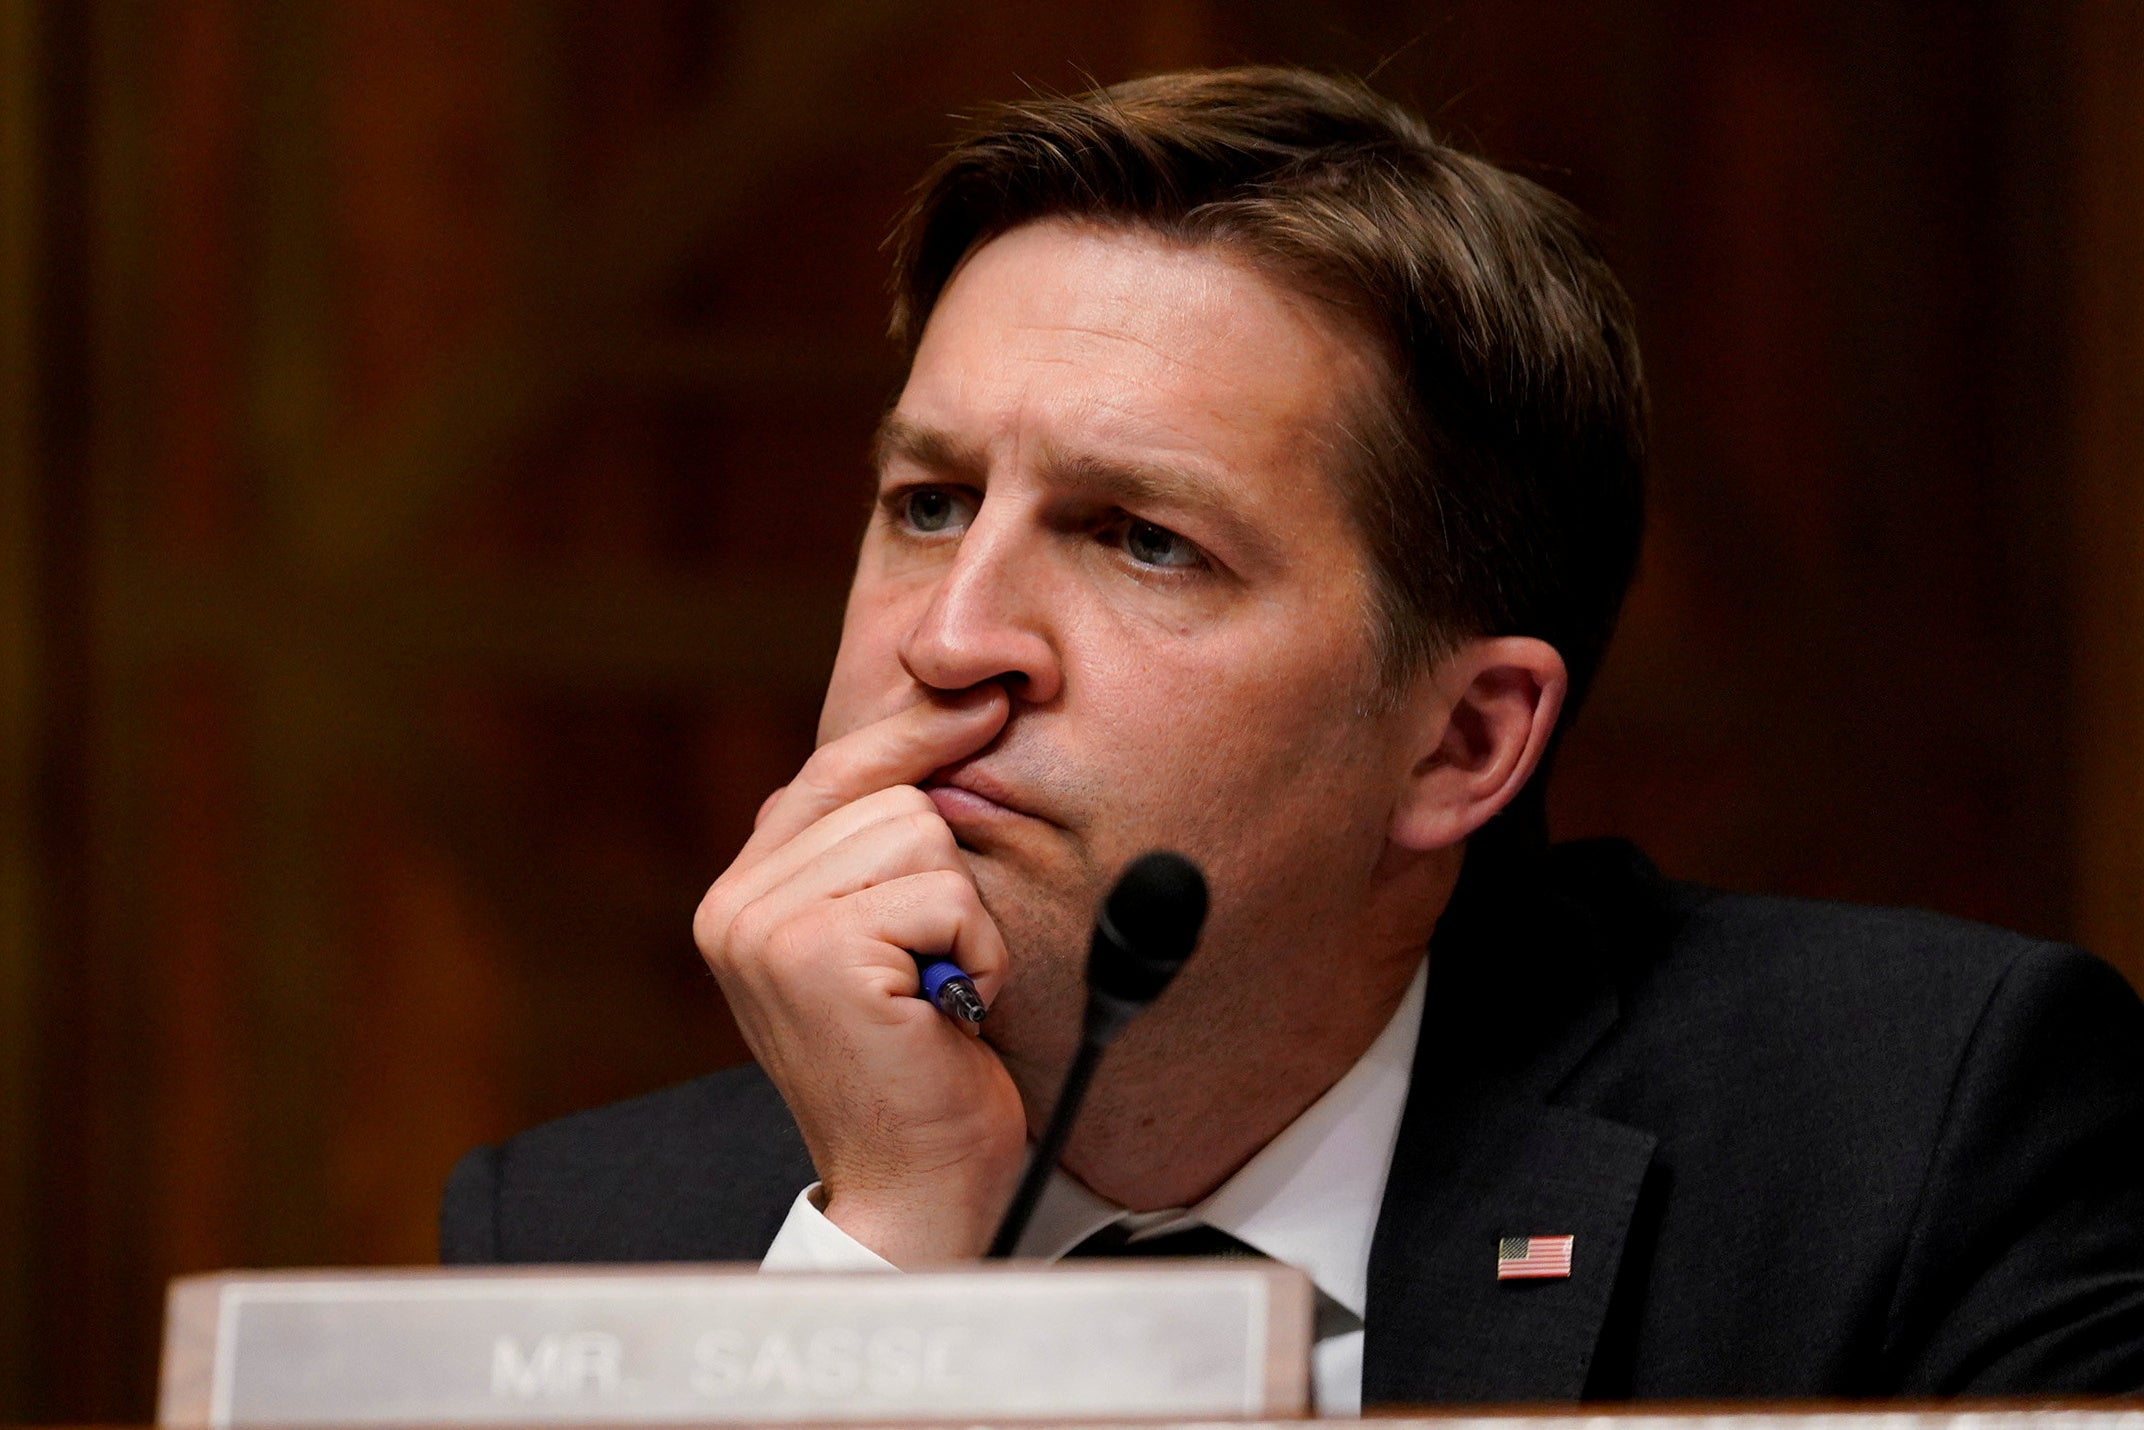 Sasse is shown resting his head on his right hand while watching William Barr's testimony.